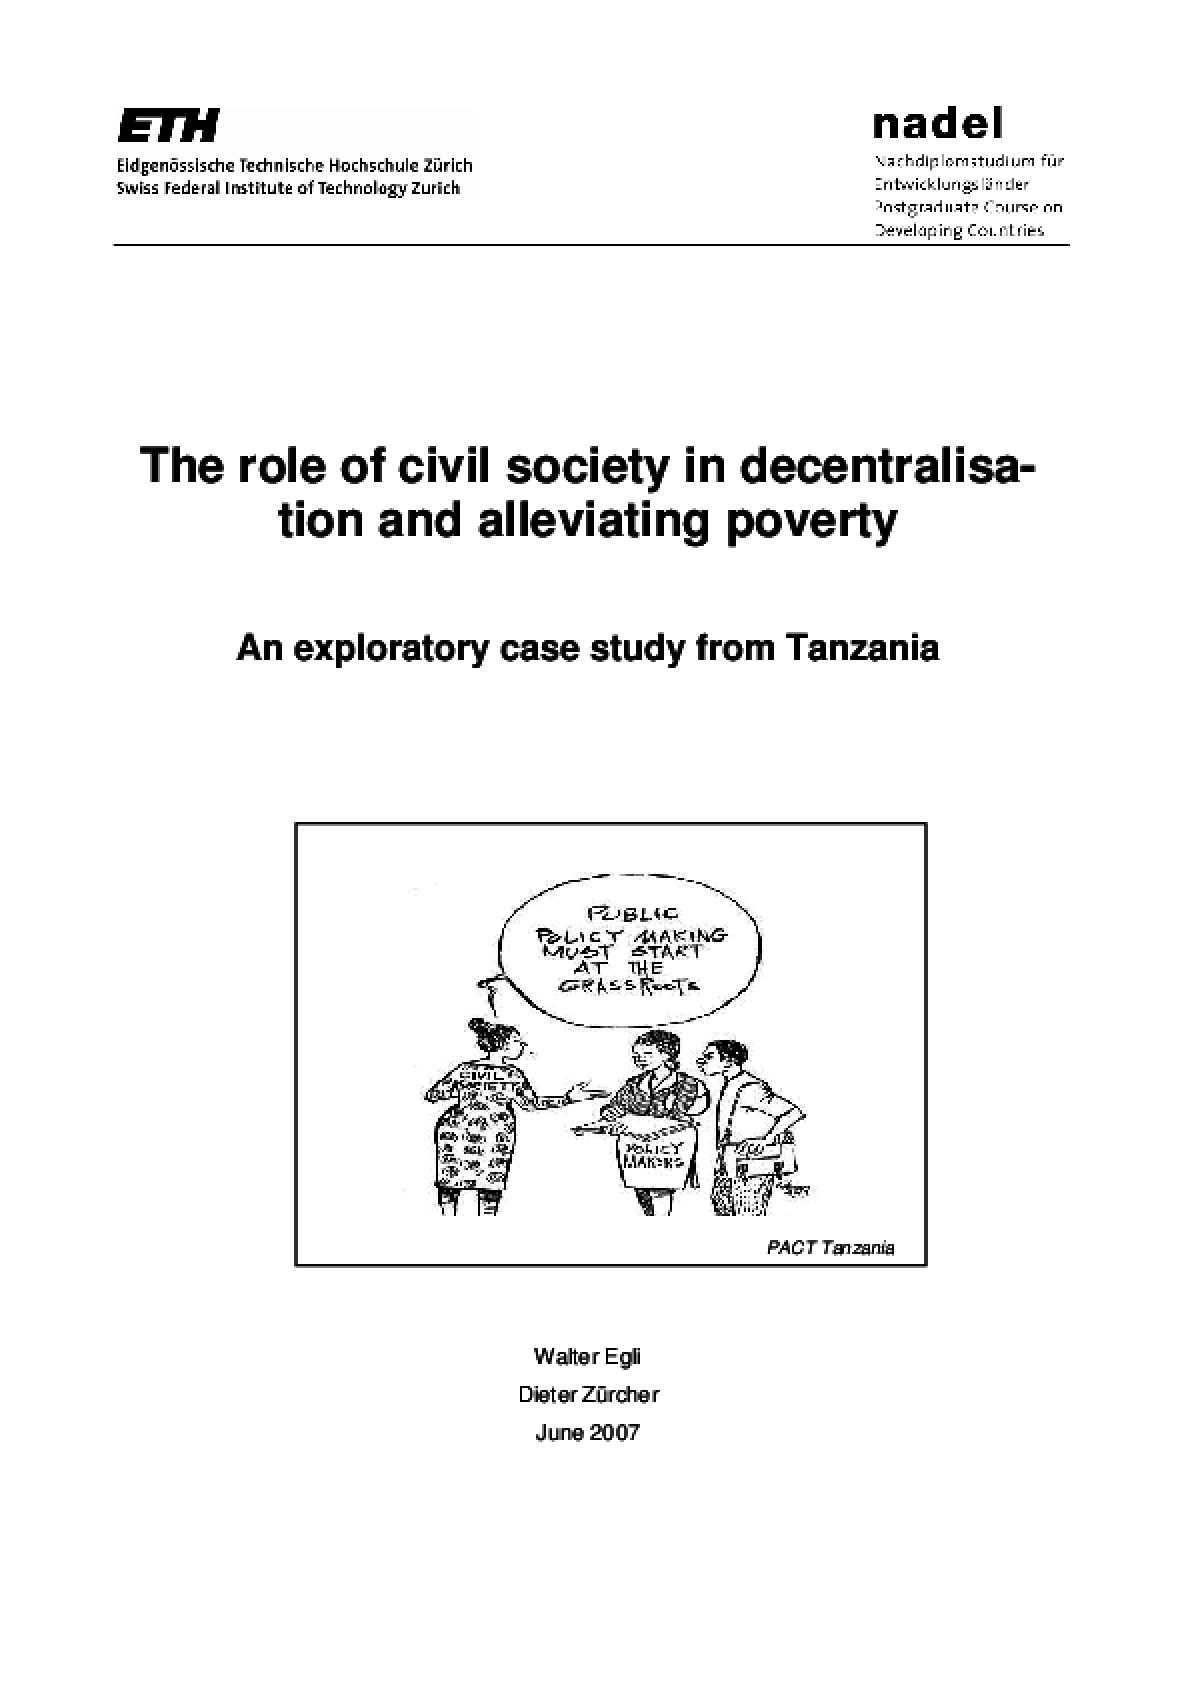 The Role of Civil Society in Decentralisa-tion and Alleviating Poverty: An Exploratory Case Study from Tanzania